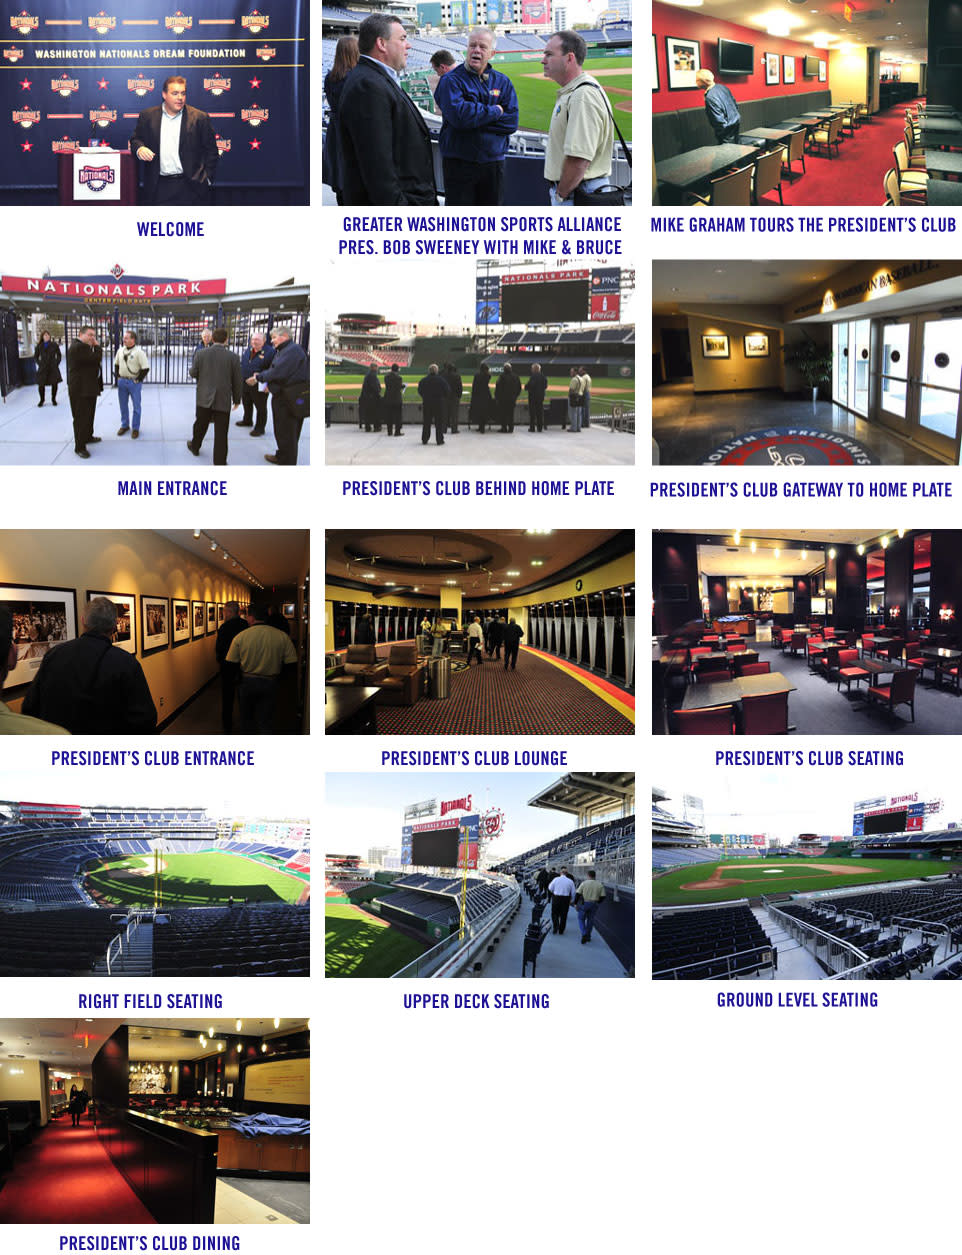 2015 World Police & Fire Games Site Inspection: Nationals Ballpark Image Gallery